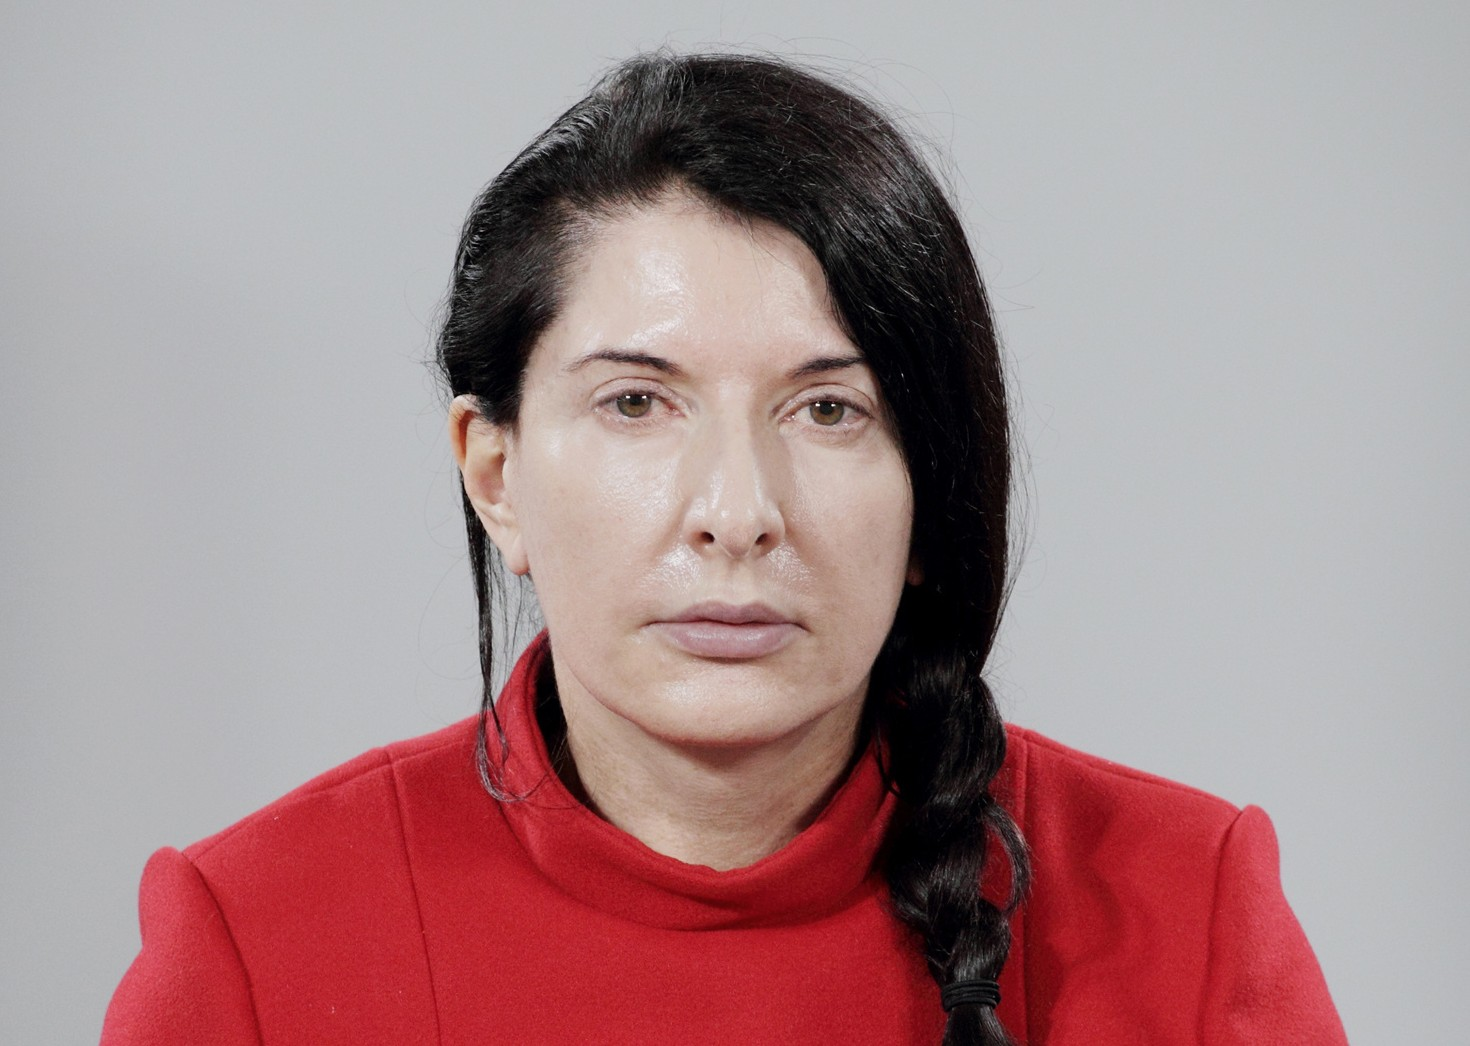 Marina Abramović: The Artist Is Present Photo by Marco Anelli. © 2010 Marco Anelli